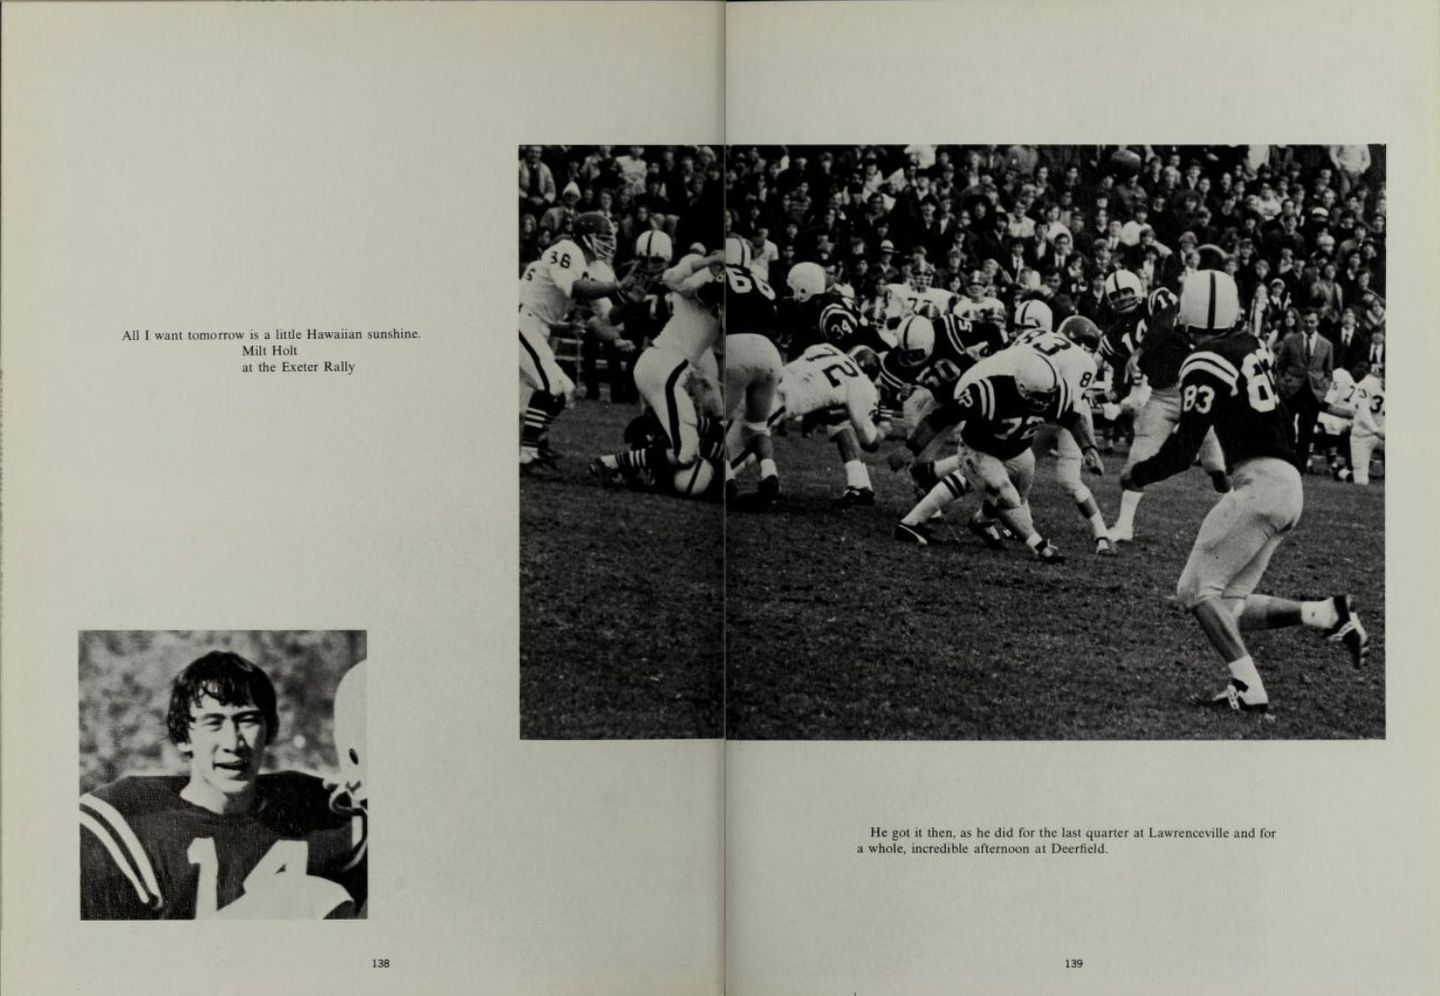 An Andover yearbook spread dedicated to quarterback Milt Holt.